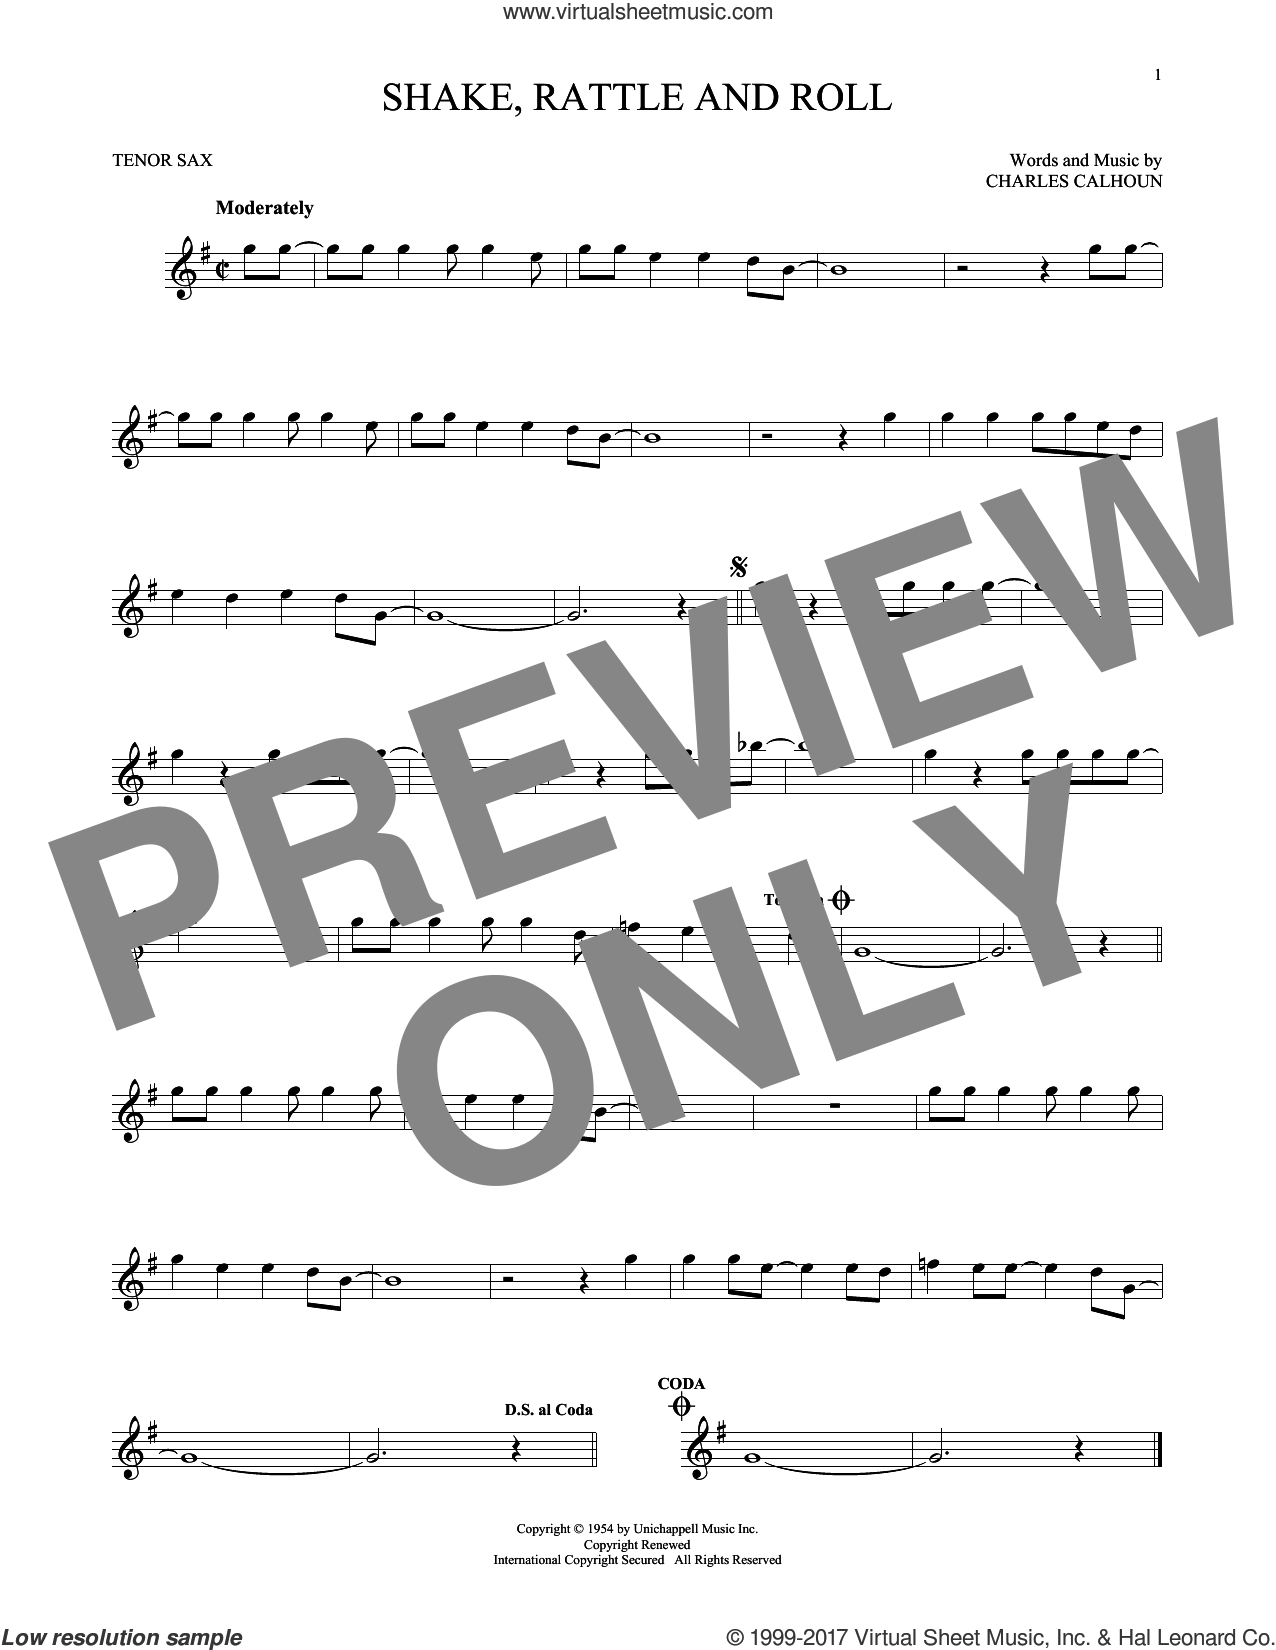 Shake, Rattle And Roll sheet music for tenor saxophone solo by Bill Haley & His Comets, Arthur Conley and Charles Calhoun, intermediate skill level